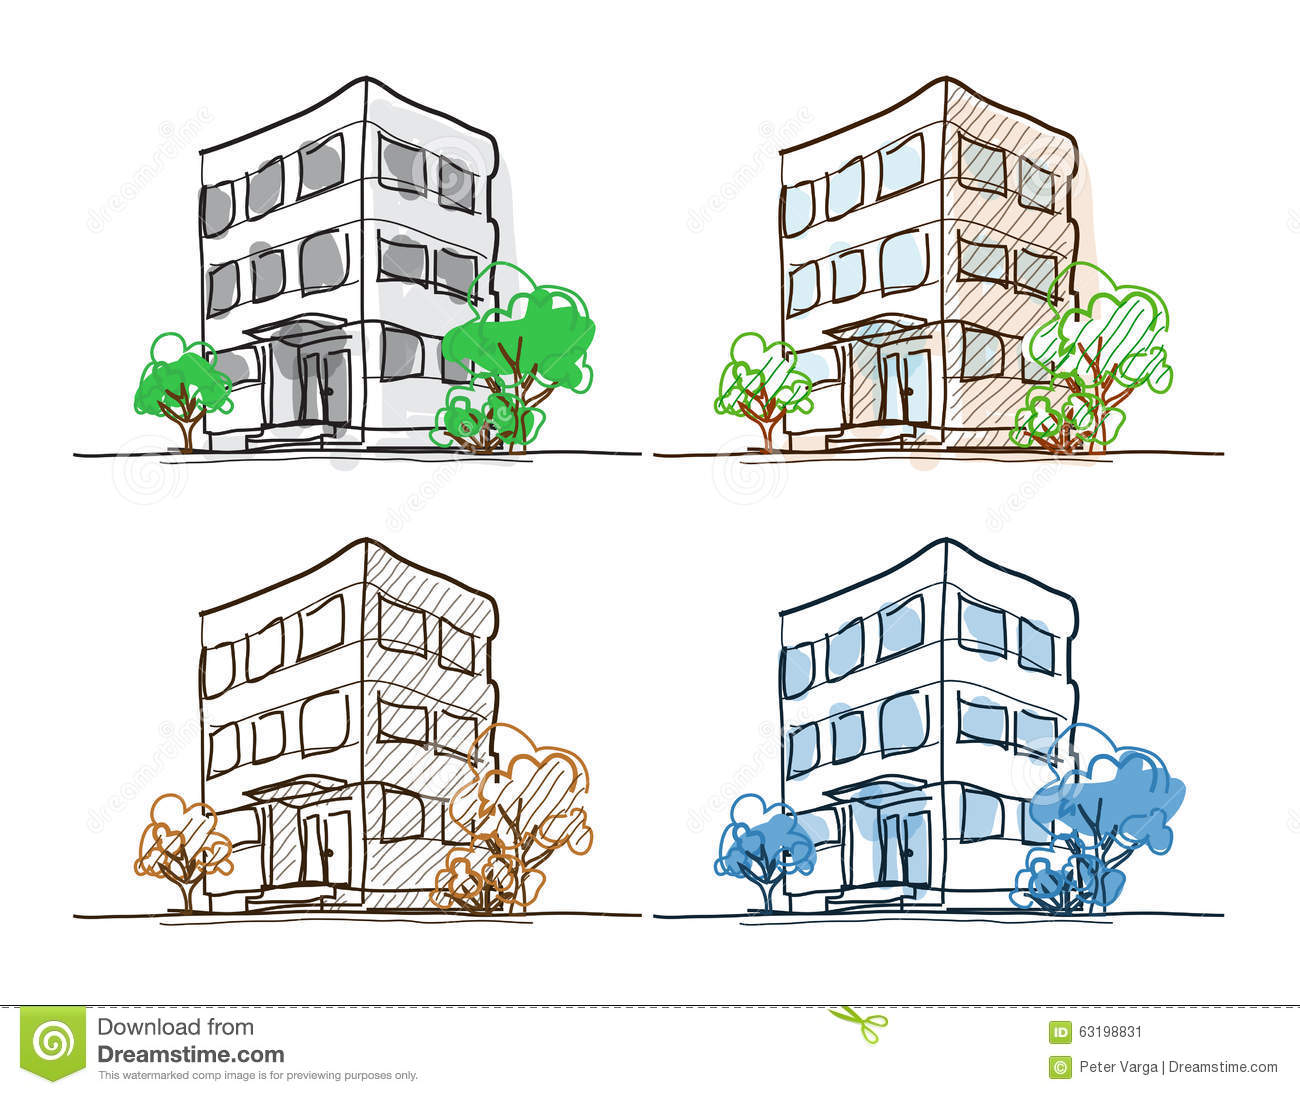 Four Outline Building Freehand Drawings Doodle Sketch With Shading And